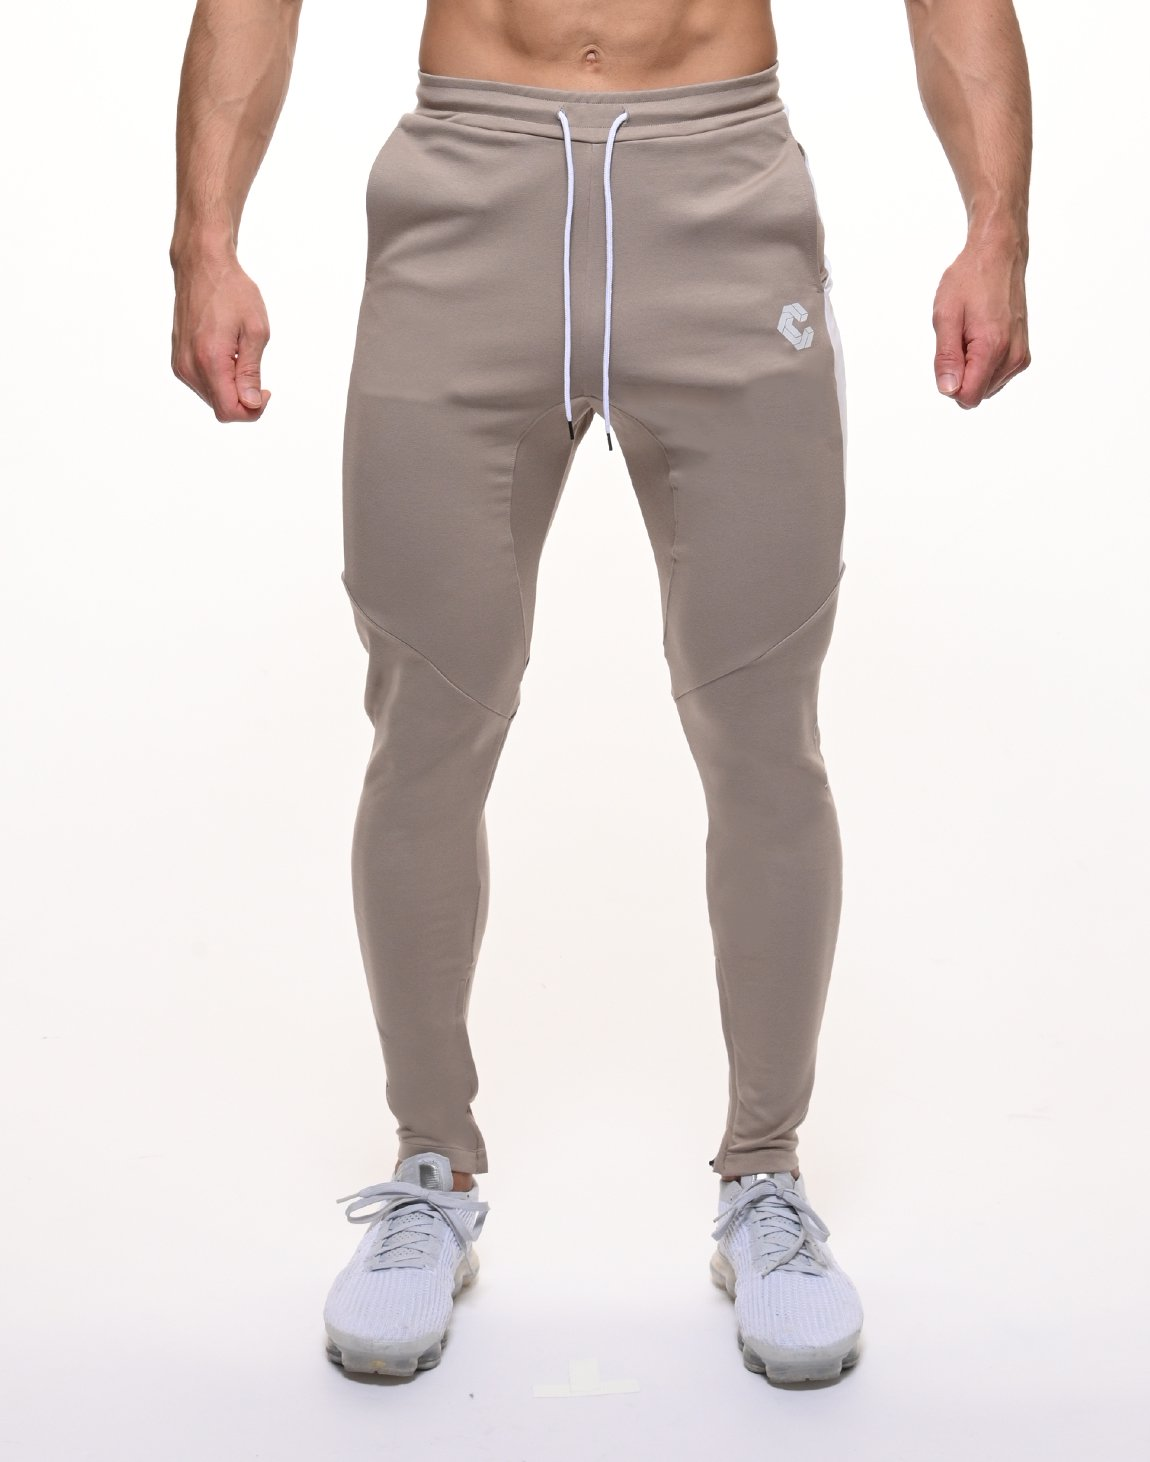 <img class='new_mark_img1' src='https://img.shop-pro.jp/img/new/icons1.gif' style='border:none;display:inline;margin:0px;padding:0px;width:auto;' />CRONOS HALF LINE PANTS【BEIGE】